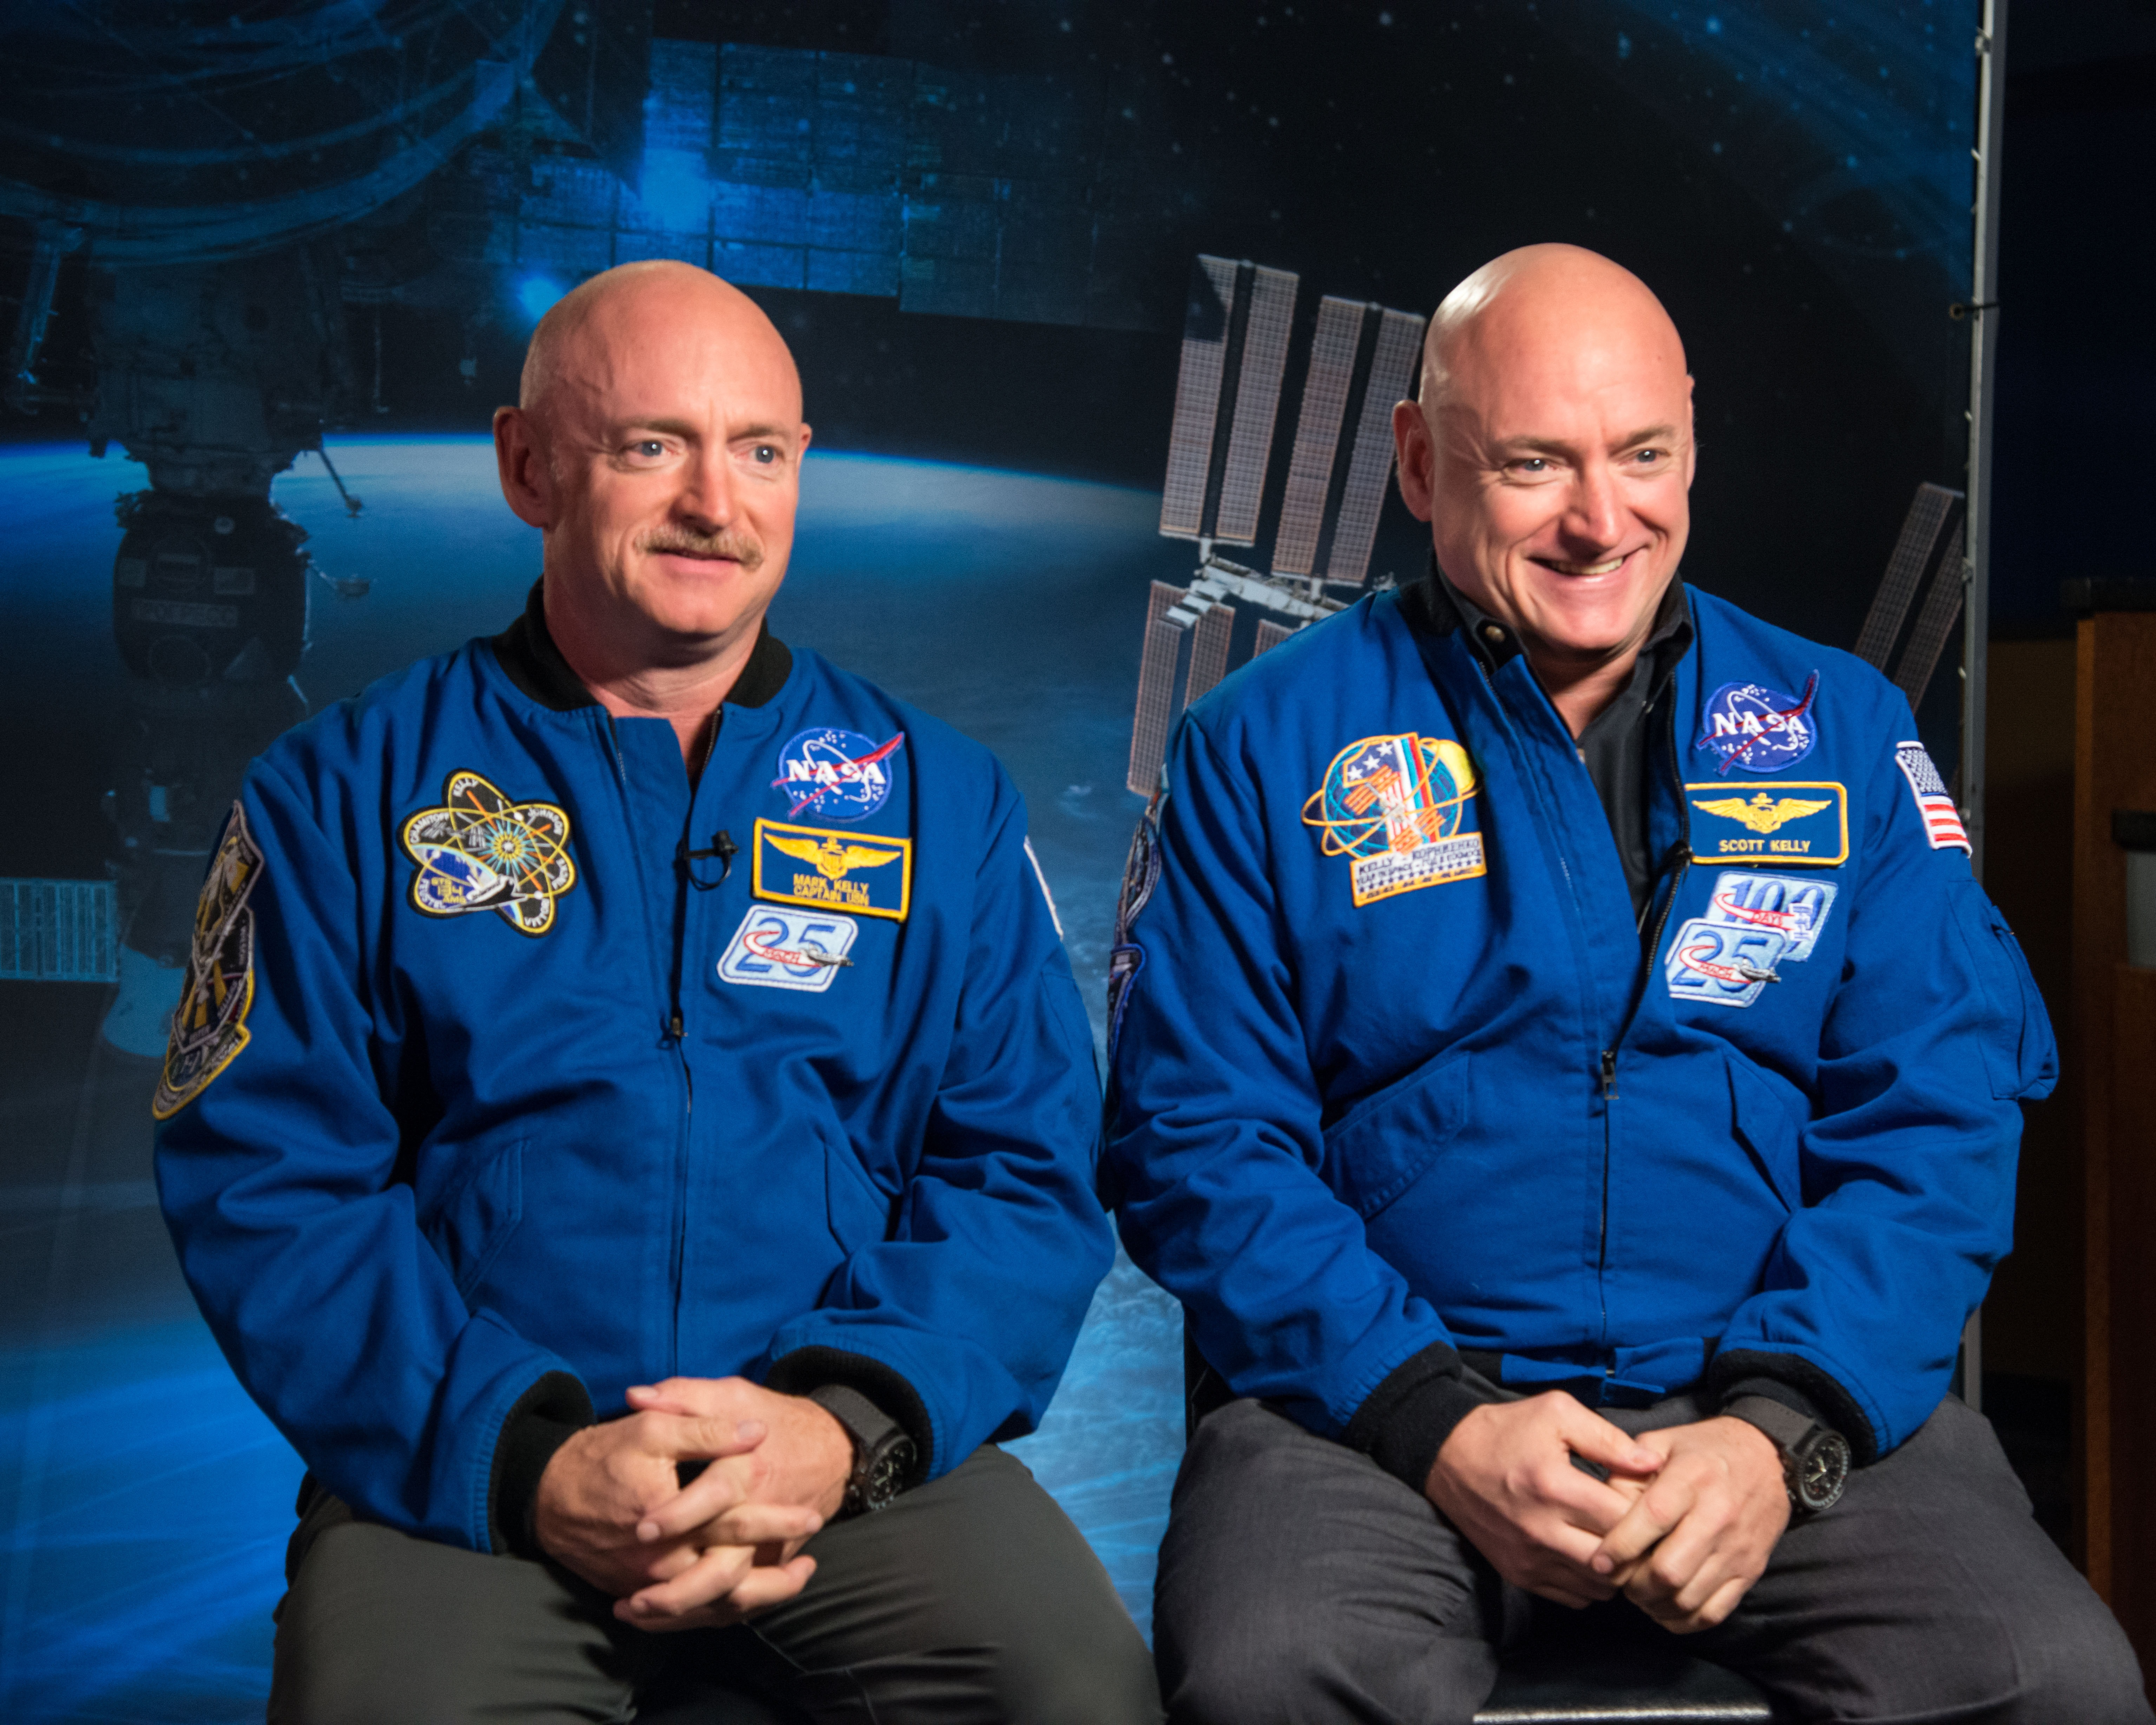 Identical twin astronauts, Scott and Mark Kelly